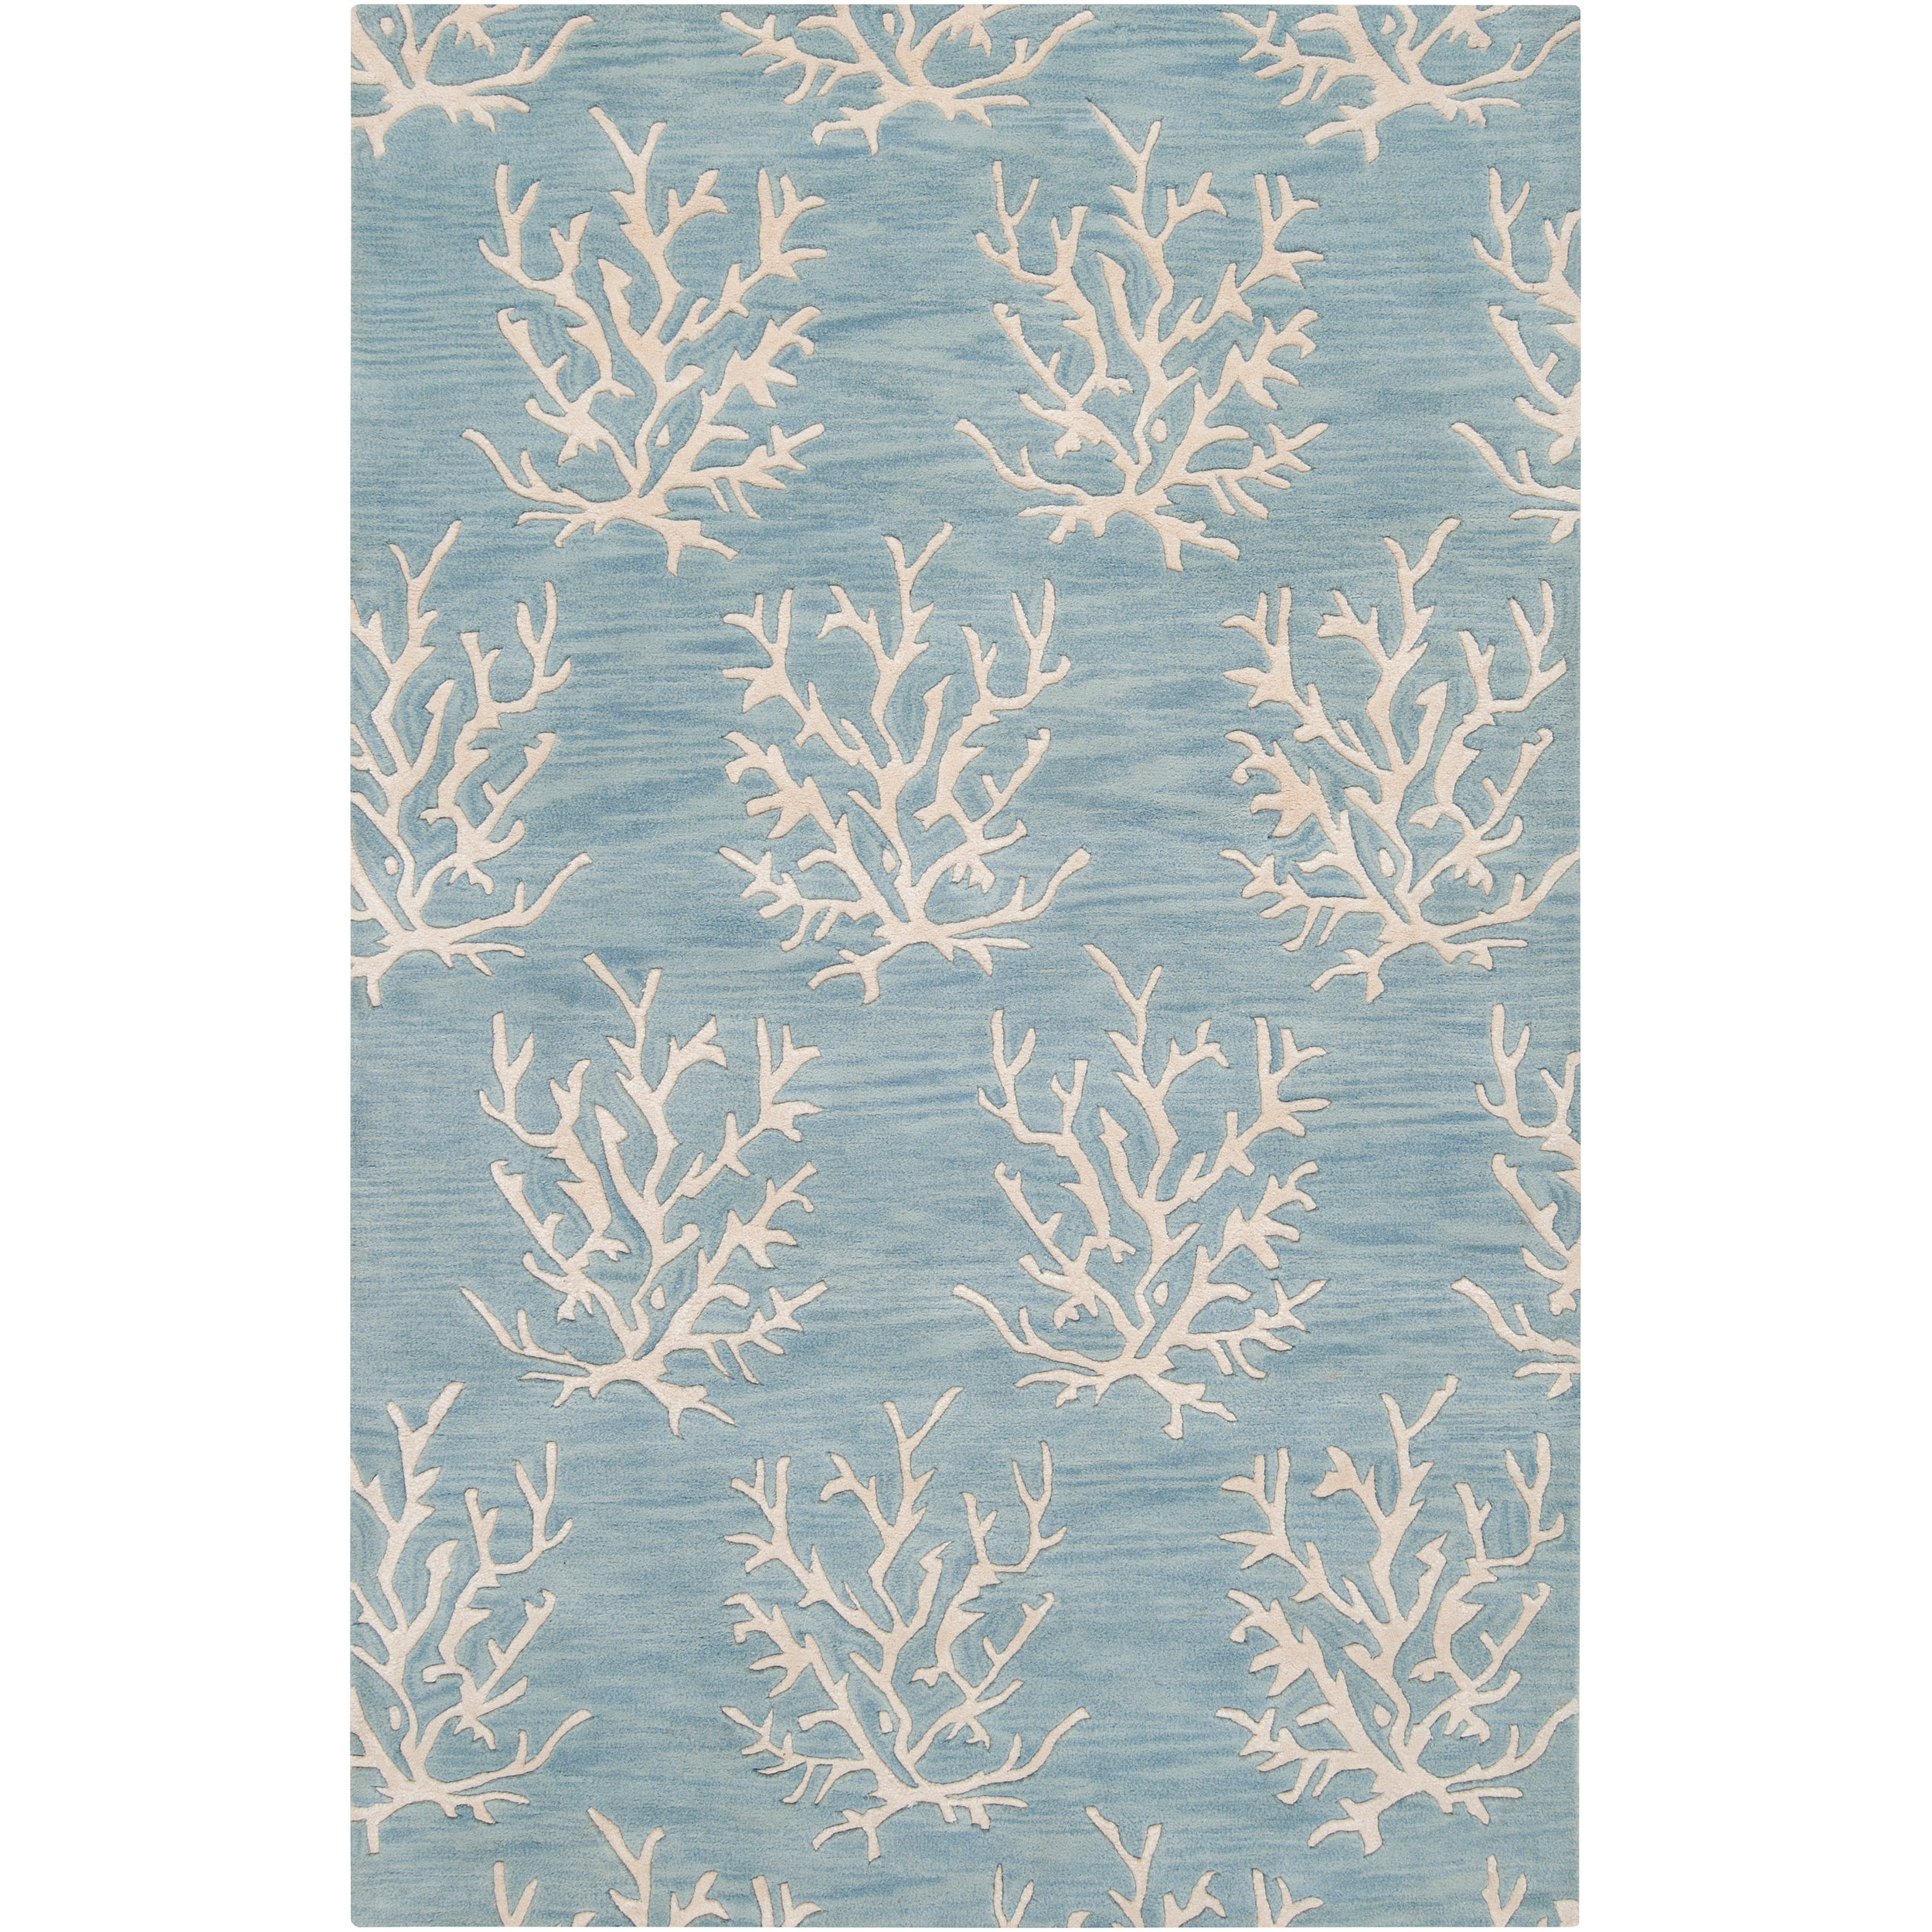 Hand Tufted Bacelot Bay Blue Beach Inspired Wool Area Rug